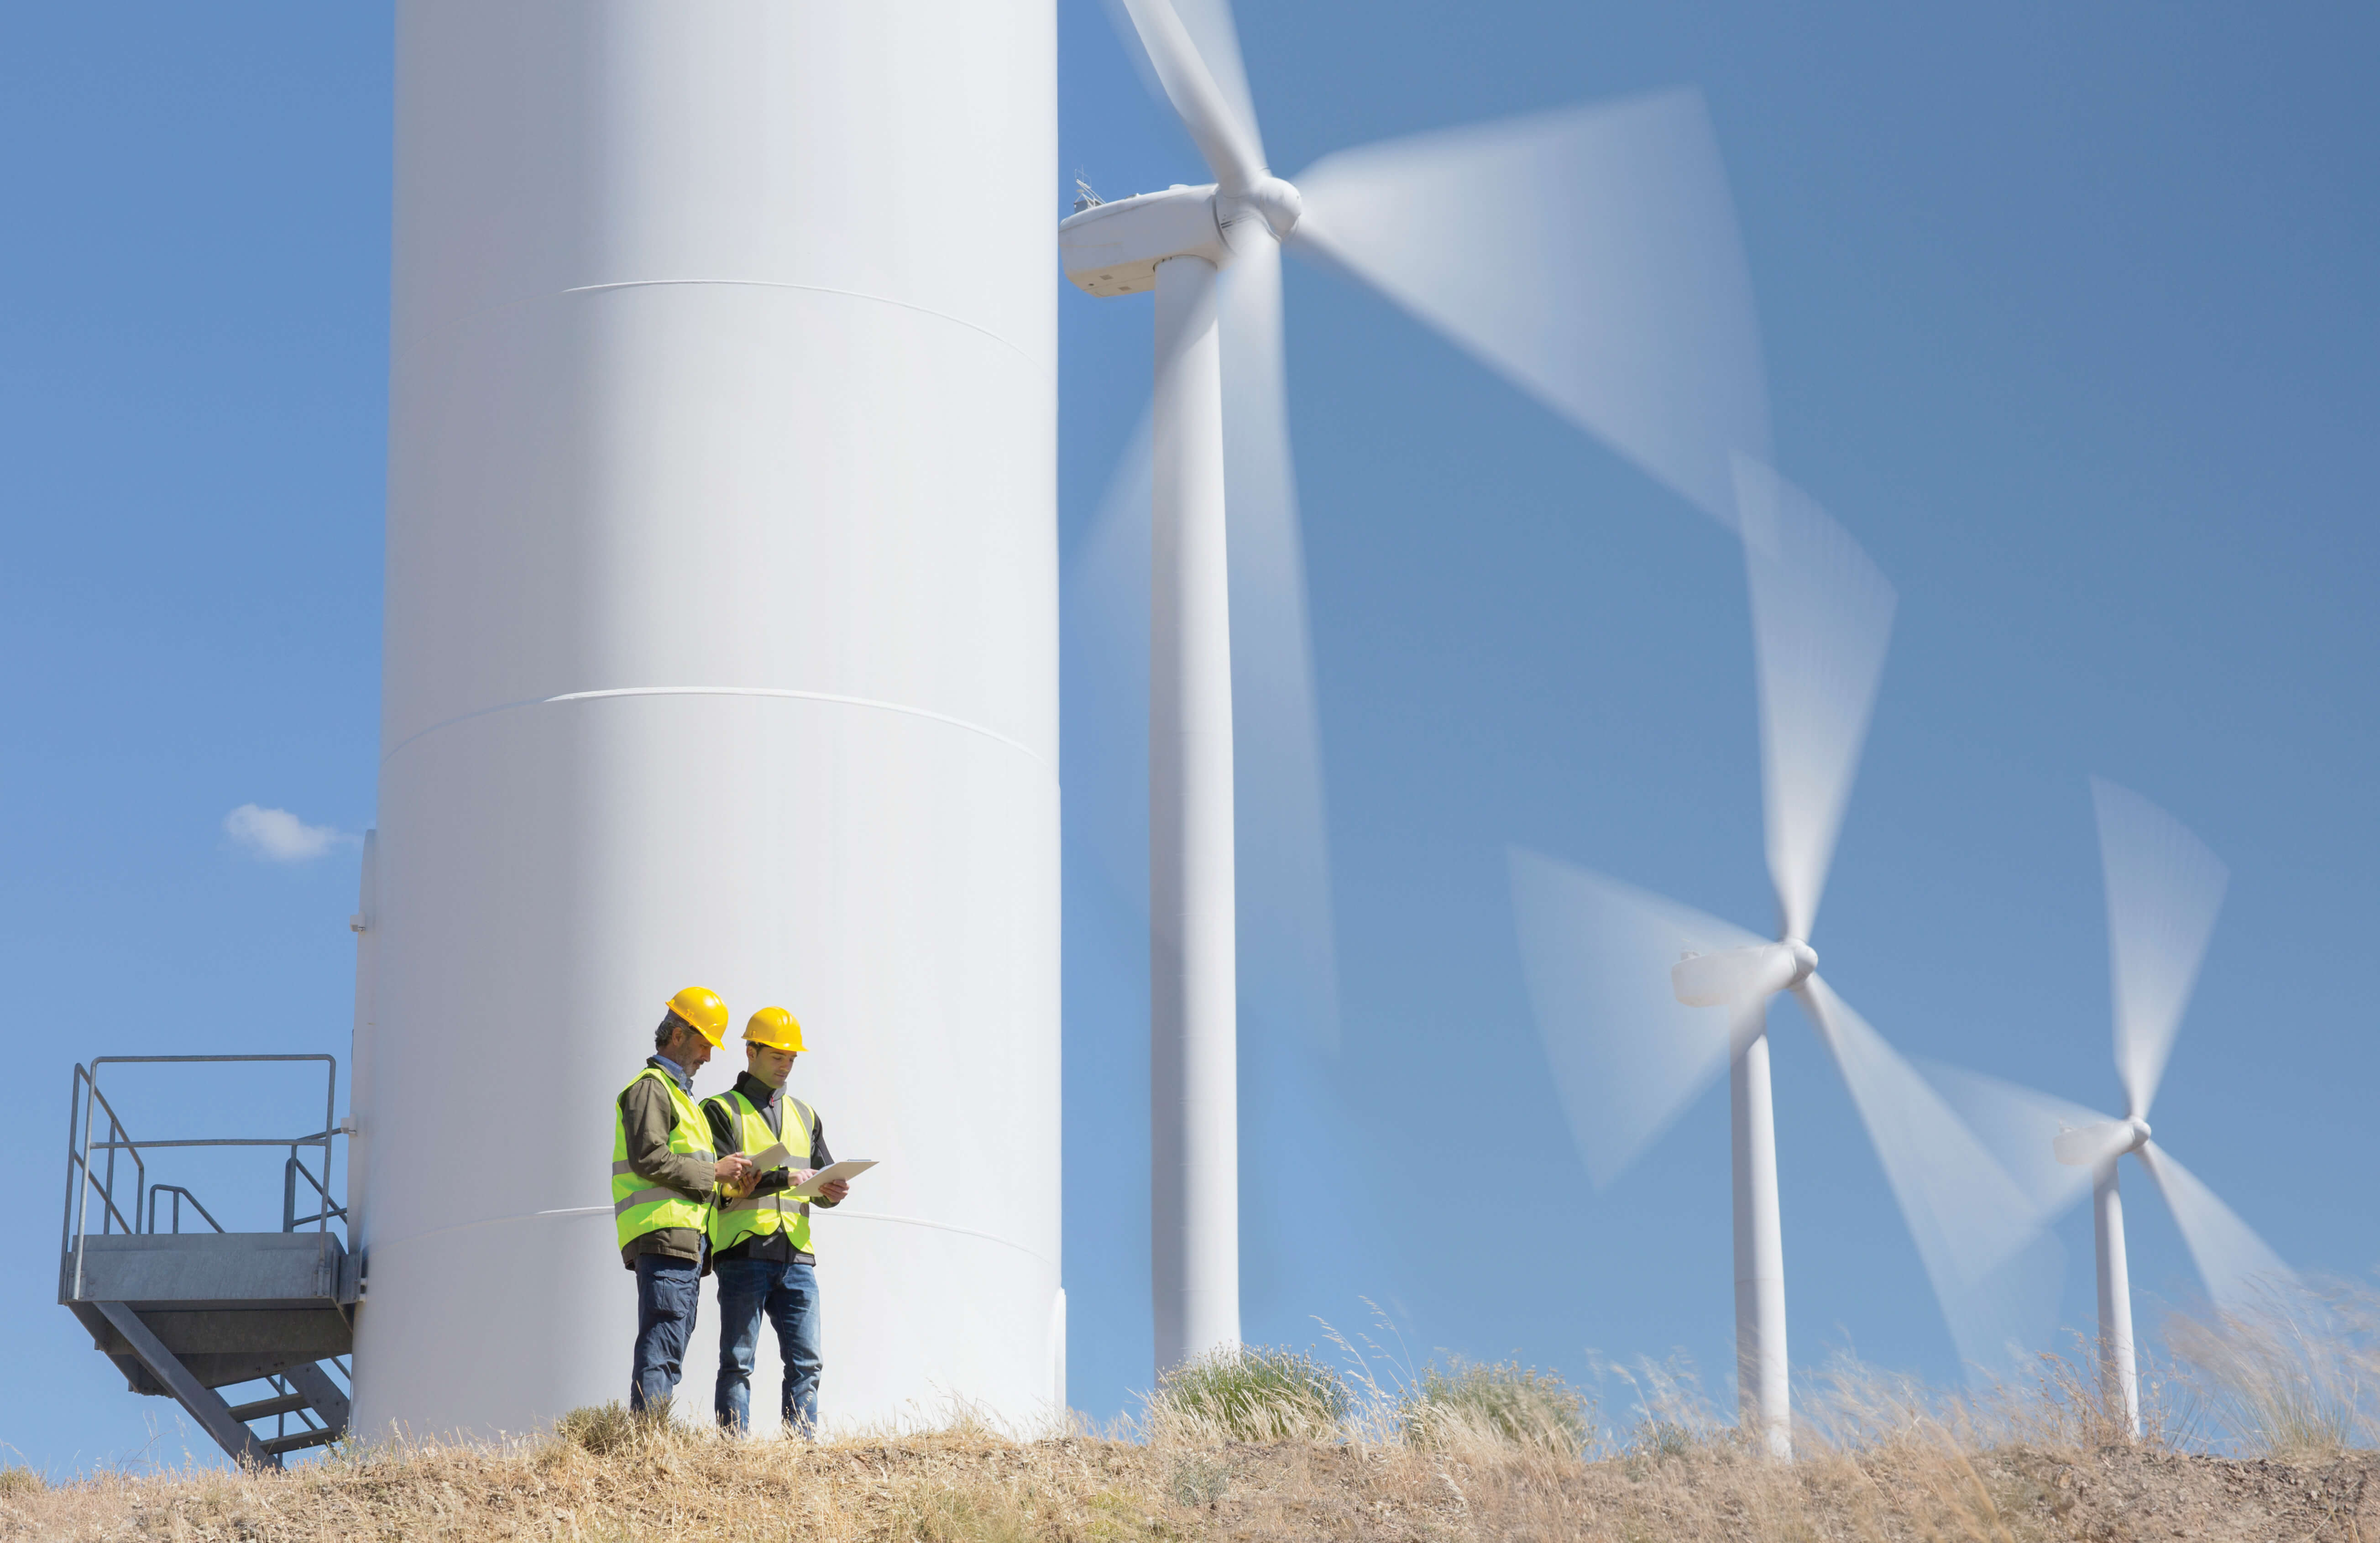 6113-07160928 © Masterfile Royalty-Free Model Release: Yes Property Release: Yes Workers talking by wind turbines in rural landscape